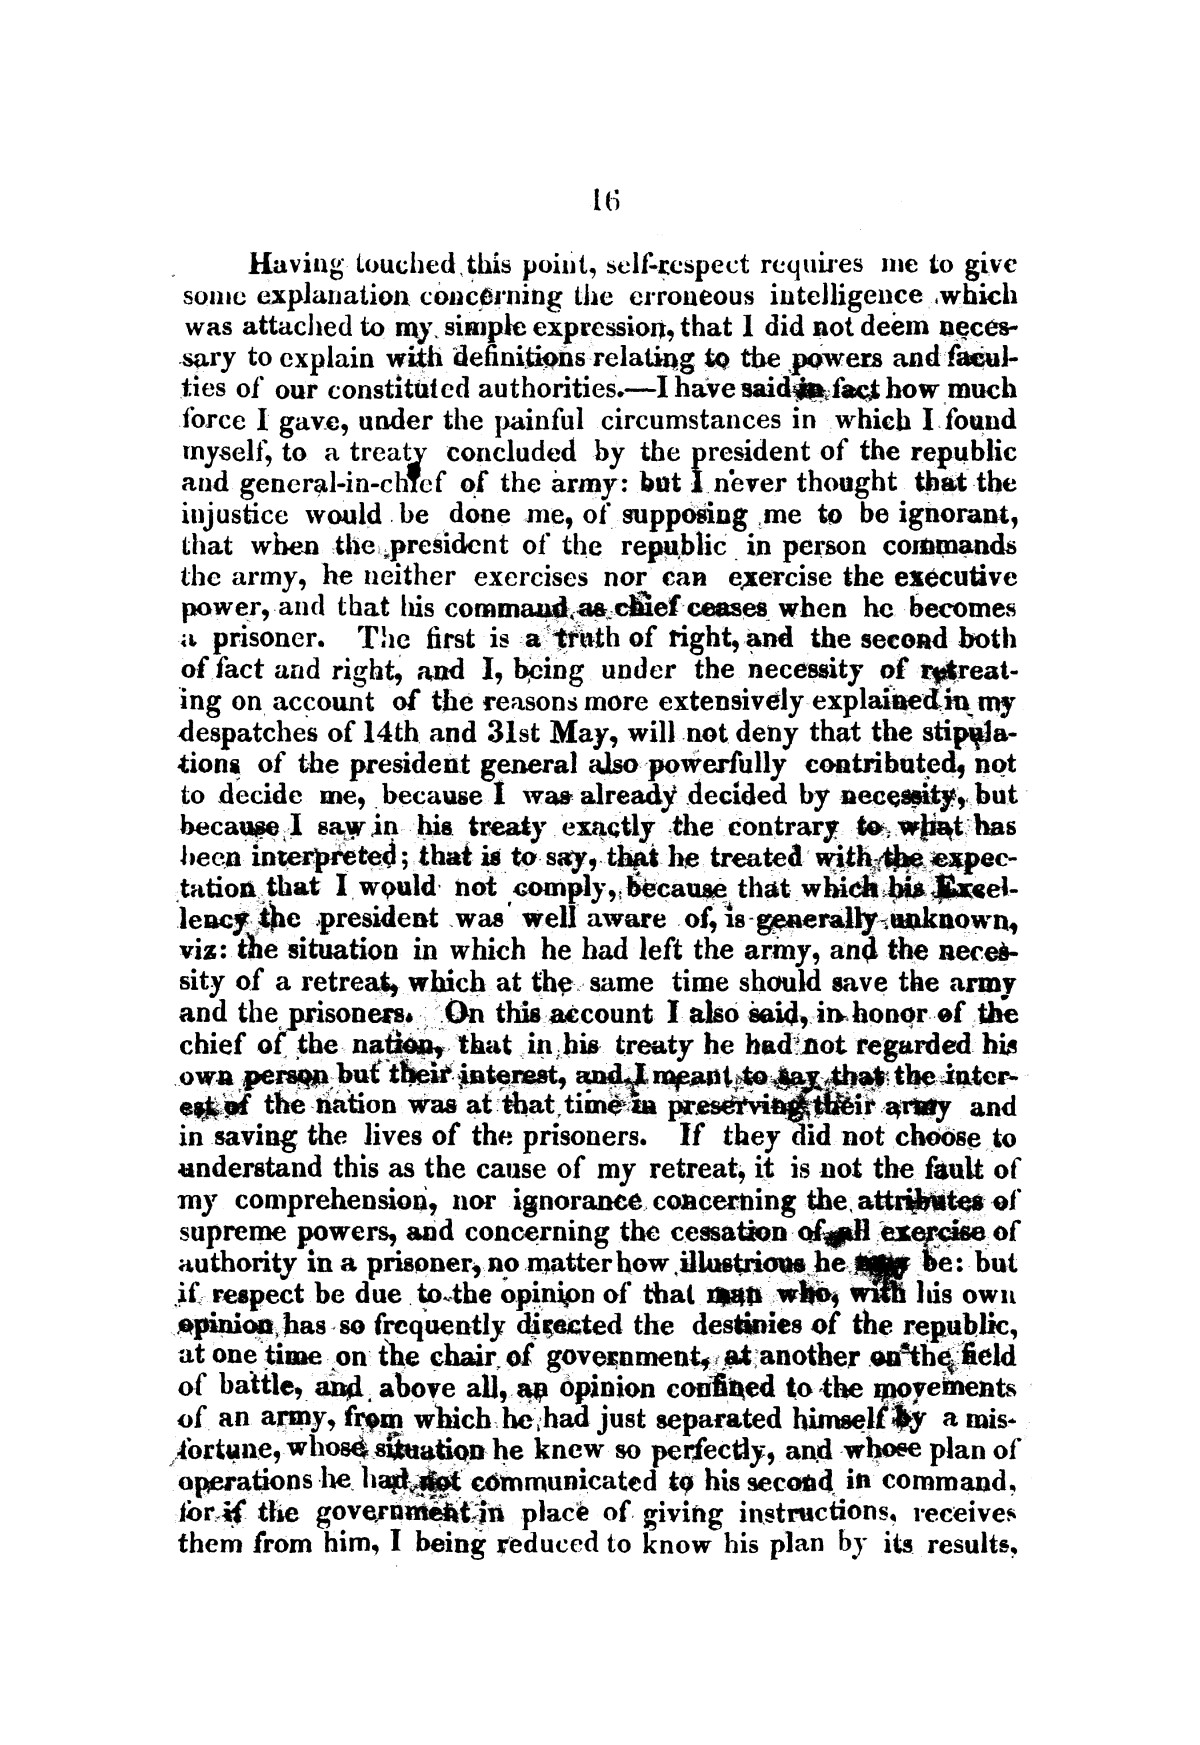 Evacuation of Texas : translation of the Representation addressed to the supreme government / by Vicente Filisola, in defence of his honor, and explanation of his operations as commander-in-chief of the army against Texas.                                                                                                      [Sequence #]: 19 of 72